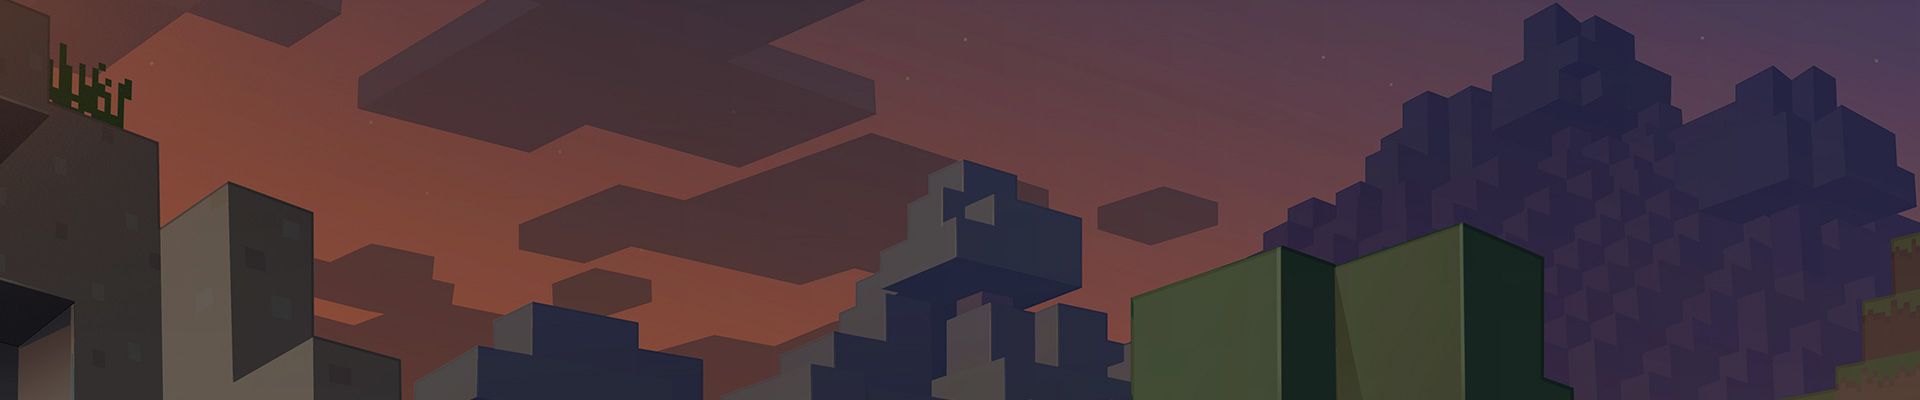 Minecraft game art illustration of a nighttime world.